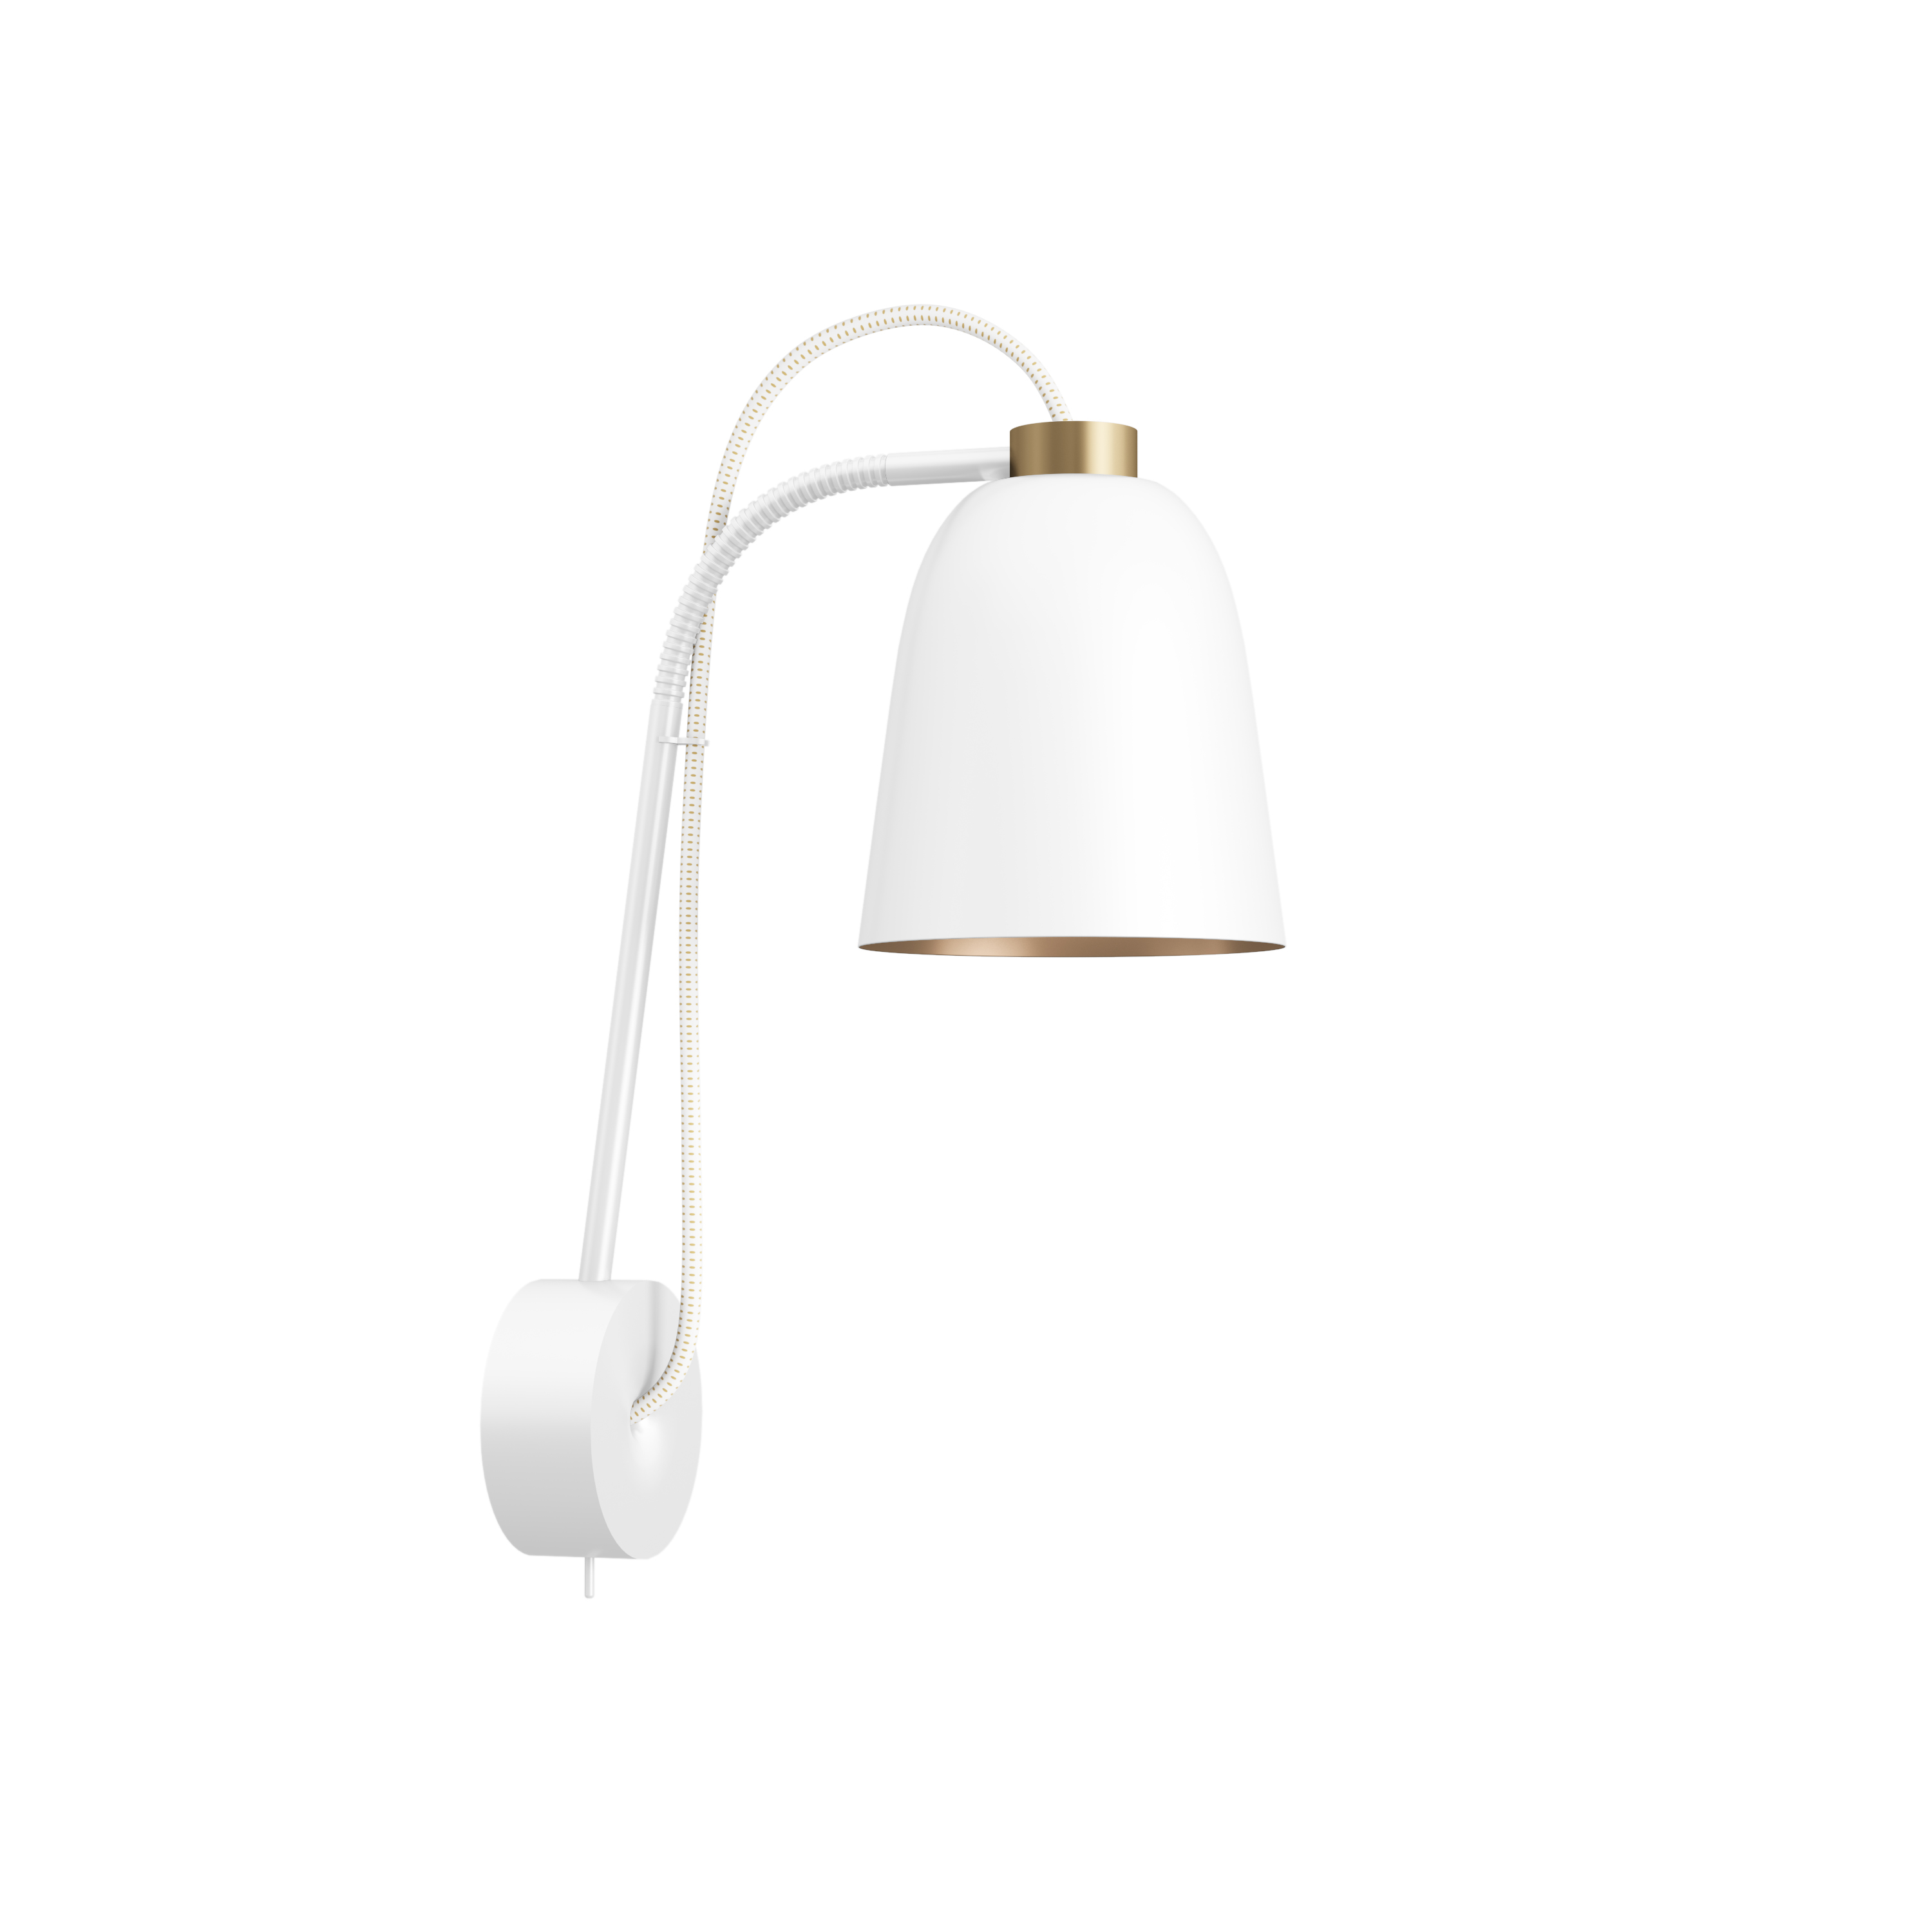 SUMMERA Wall Matt White/Gold - Gold + White/Gold Cord (Incl. Matt White Base)